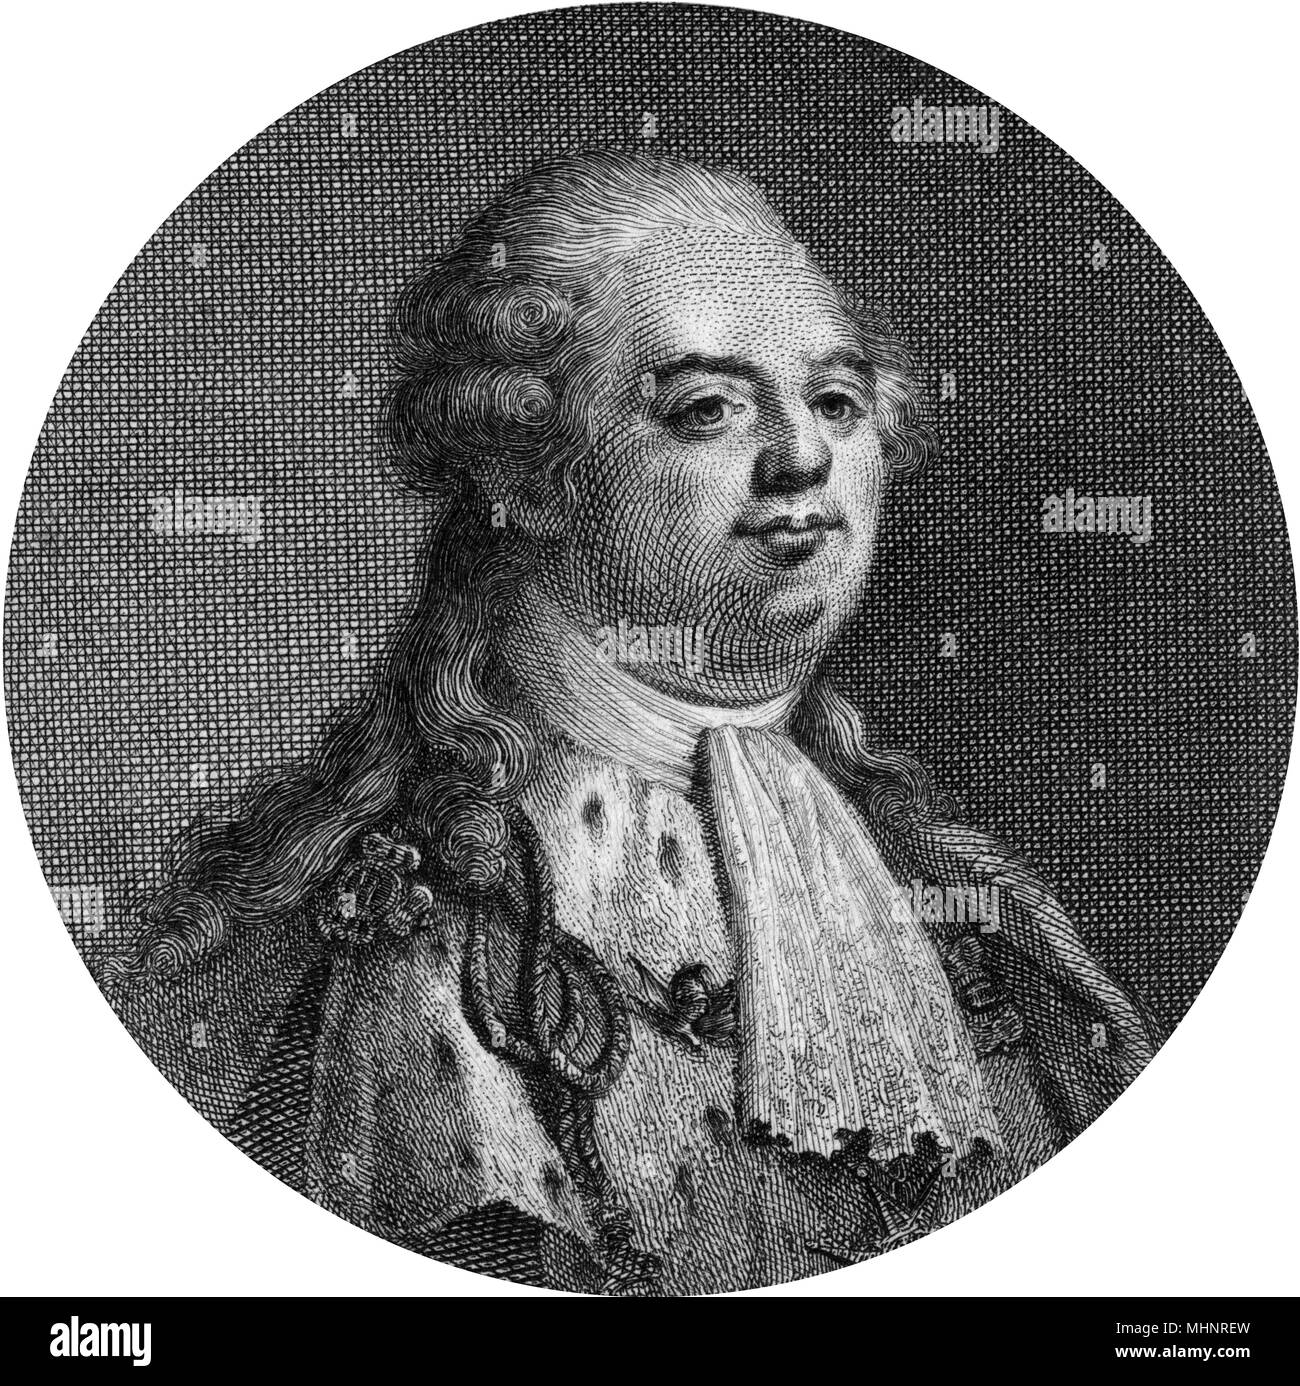 Louis XVI, King of France (1754-1793, reigned 1774-1792).     Date: circa 1790 Stock Photo